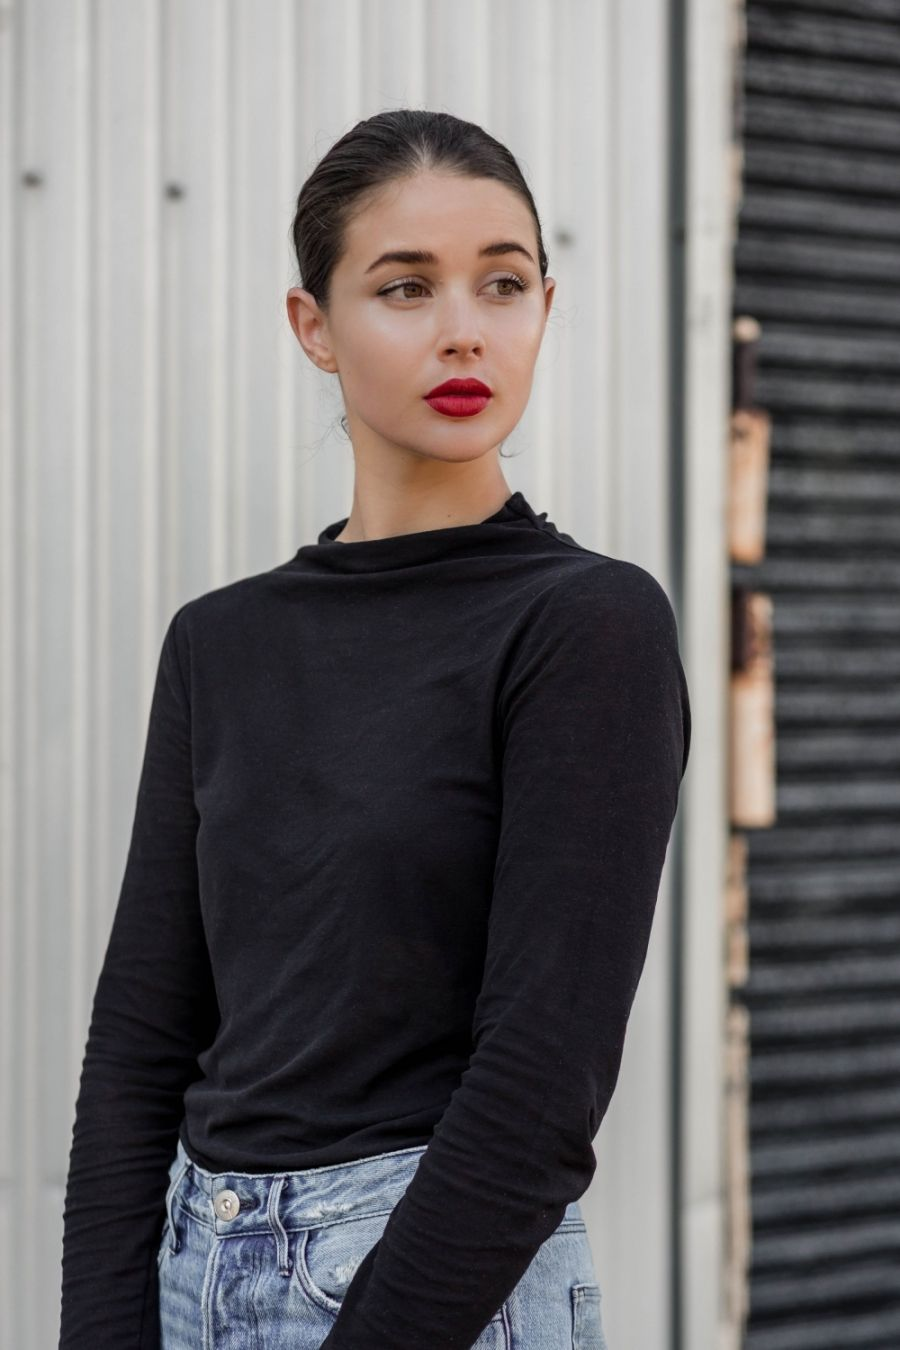 Red Lip Beauty Mbfwa Street Style Harperandharley Red